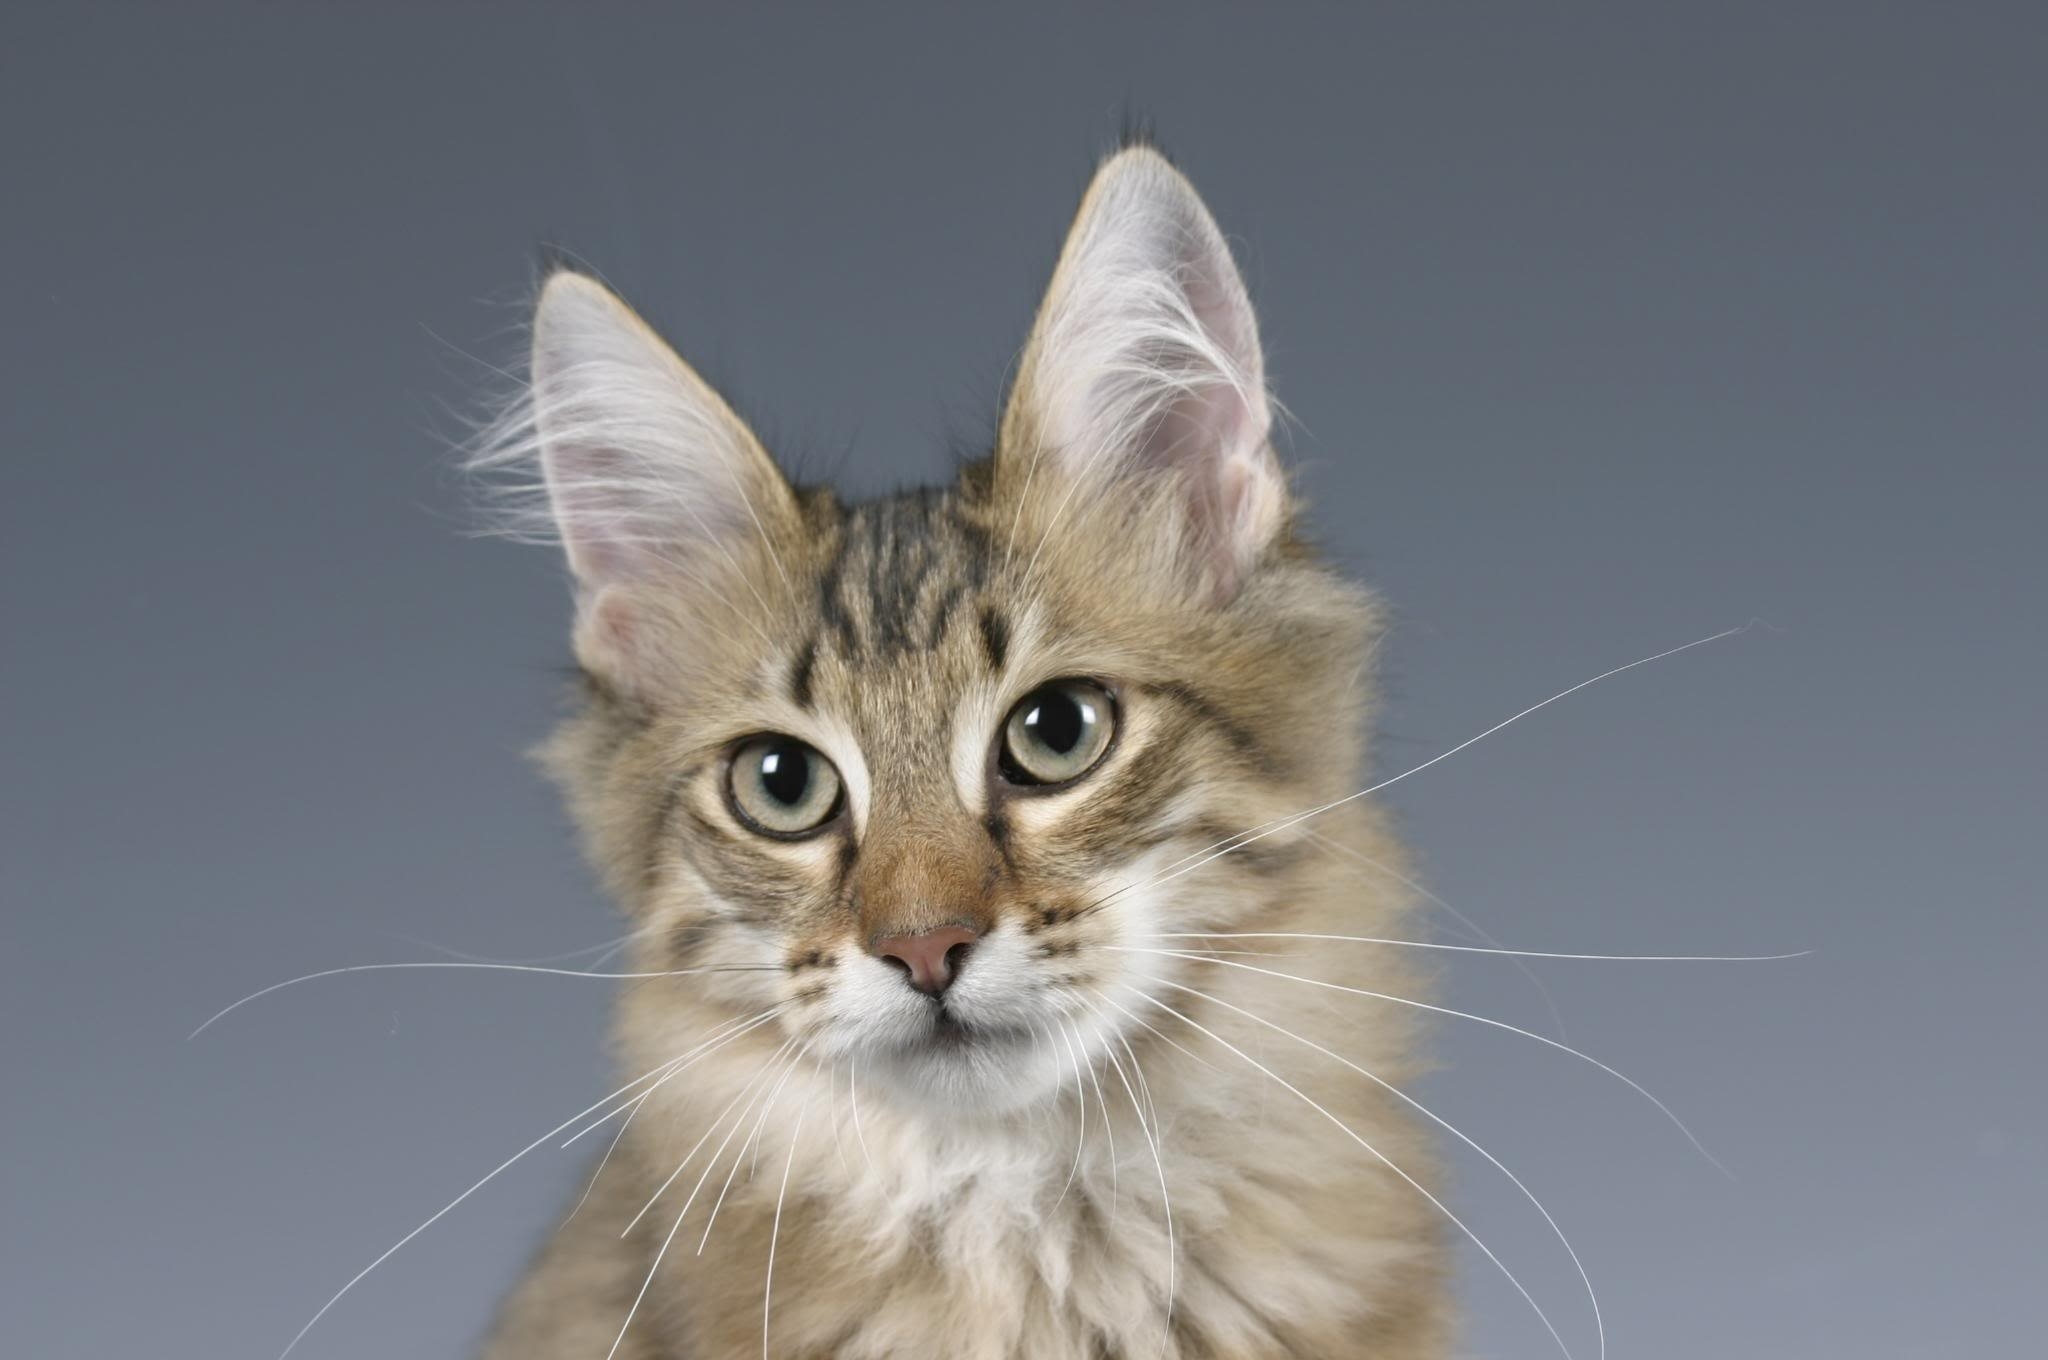 59201 download wallpaper Animals, Cat, Muzzle, Fluffy, Ears, Sight, Opinion screensavers and pictures for free